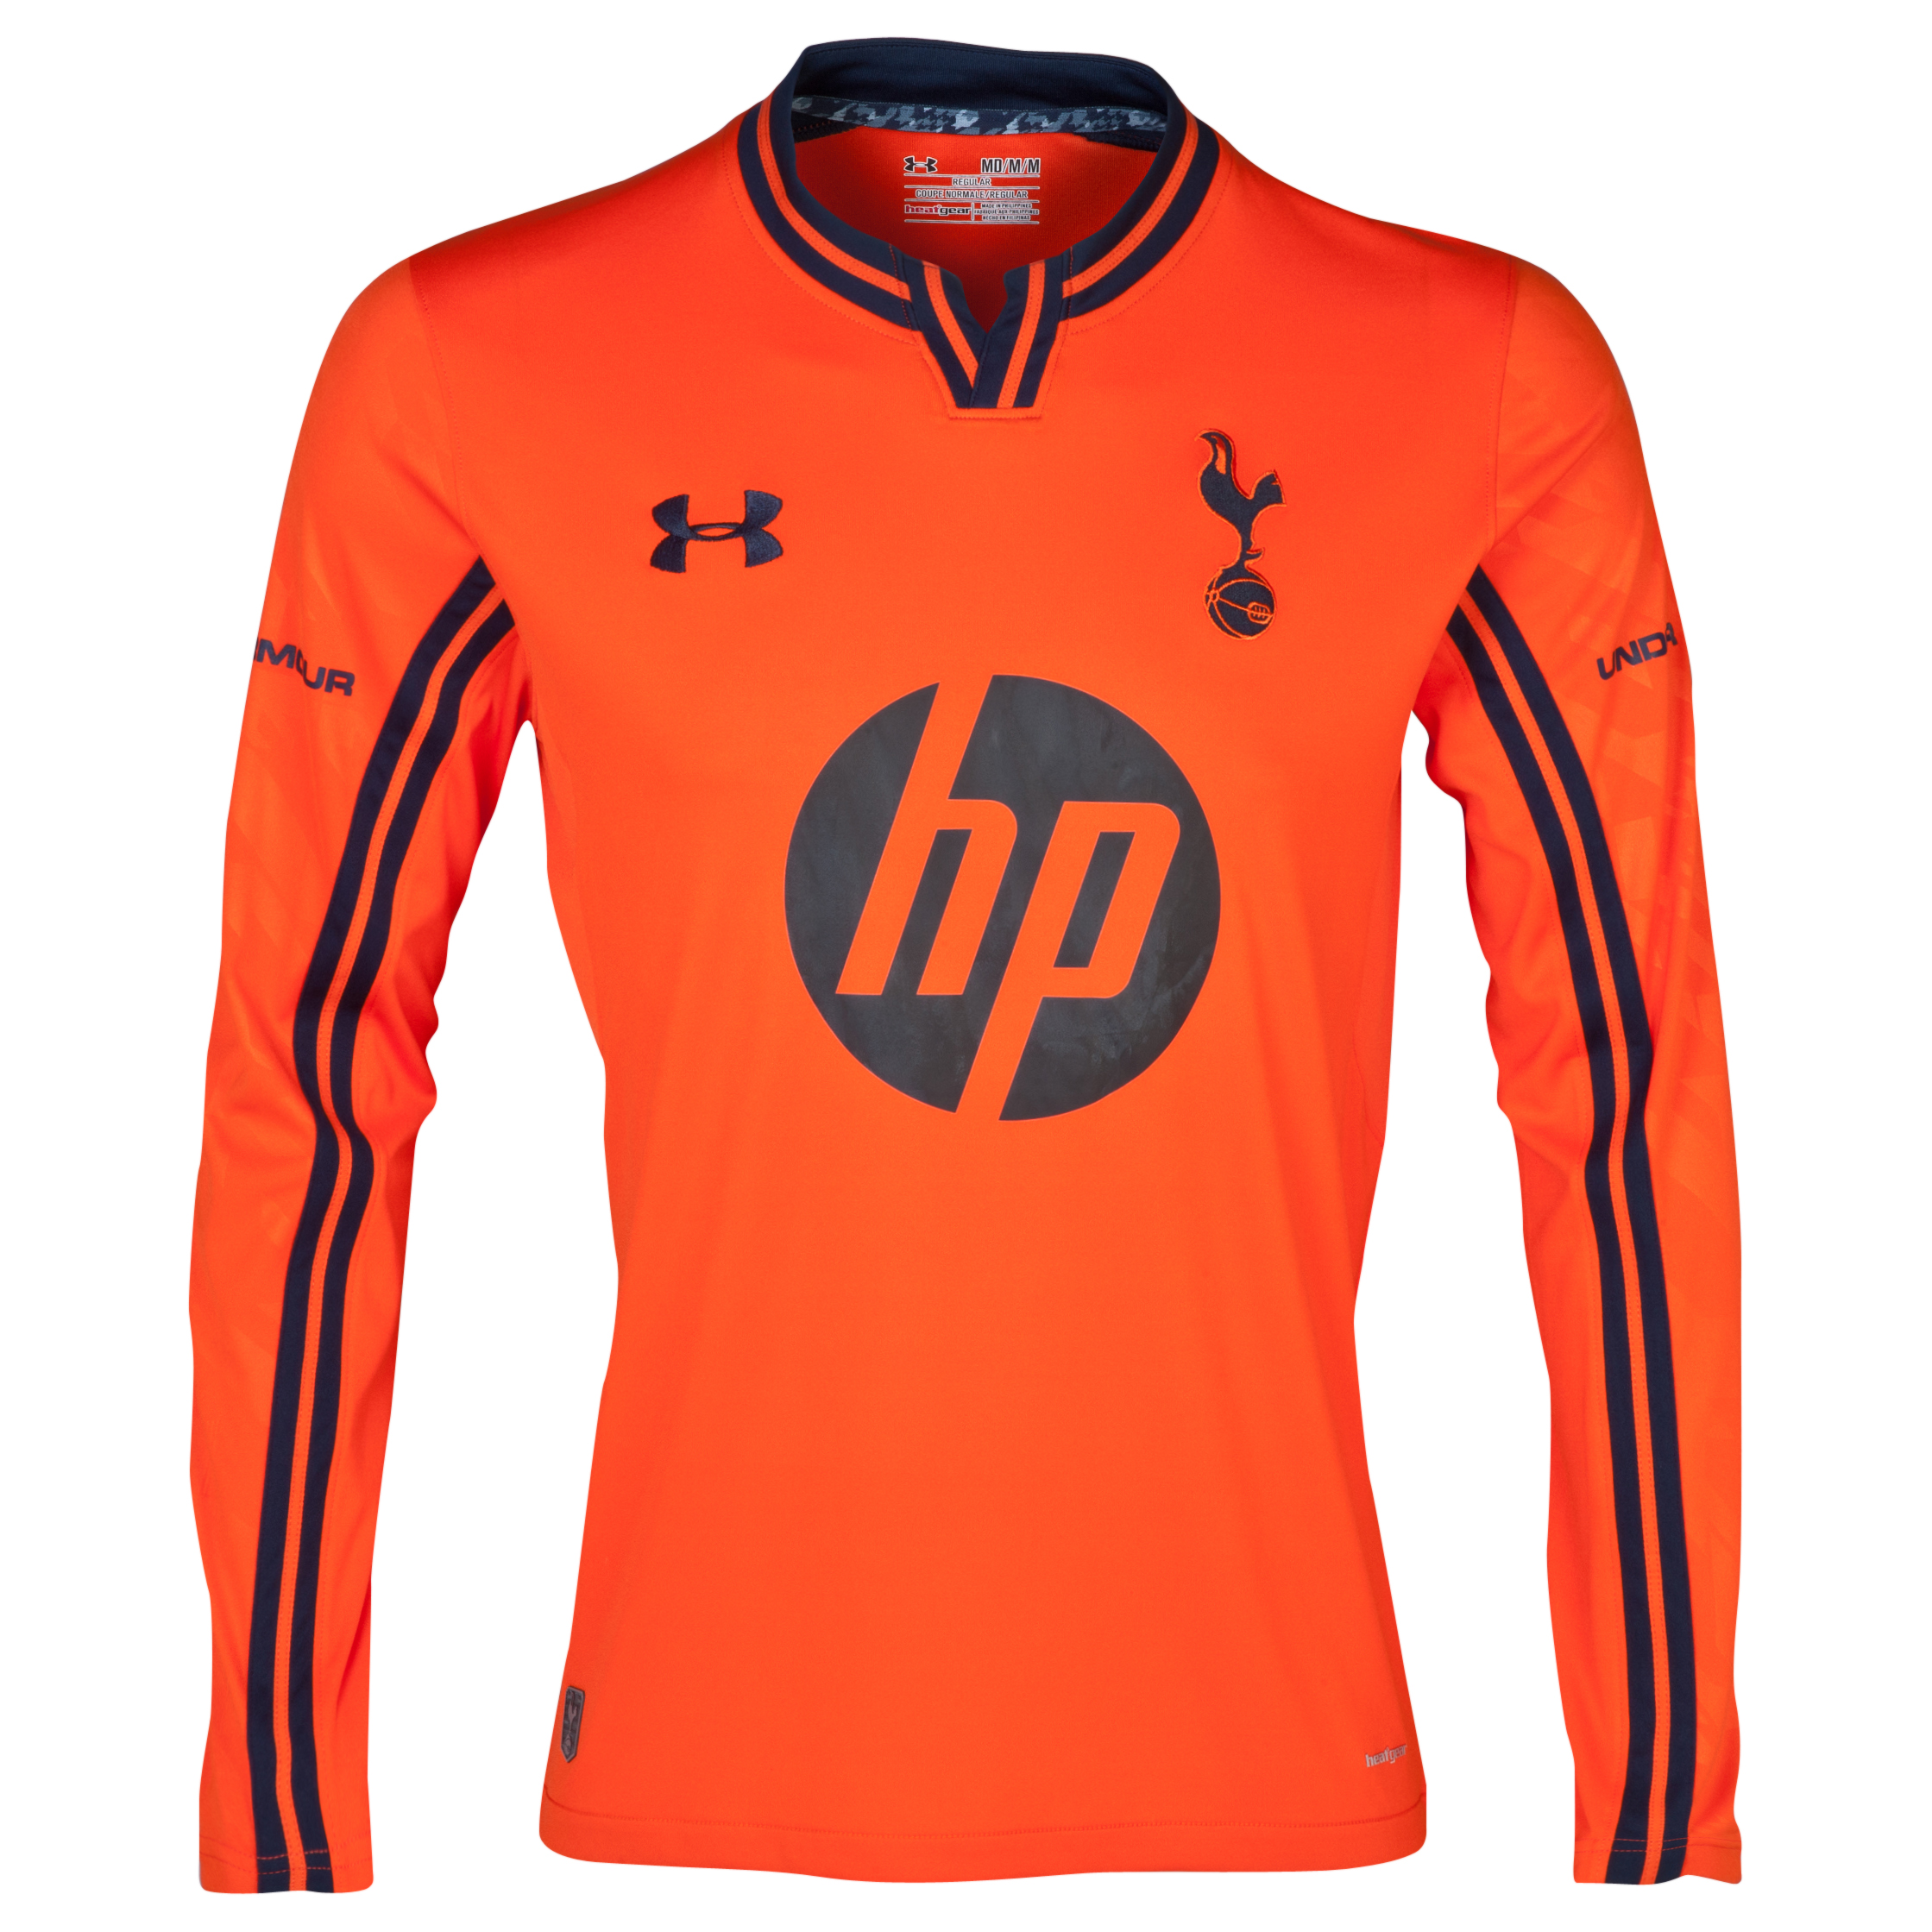 Tottenham Hotspur Home Goalkeeper Shirt 2013/14 - Kids